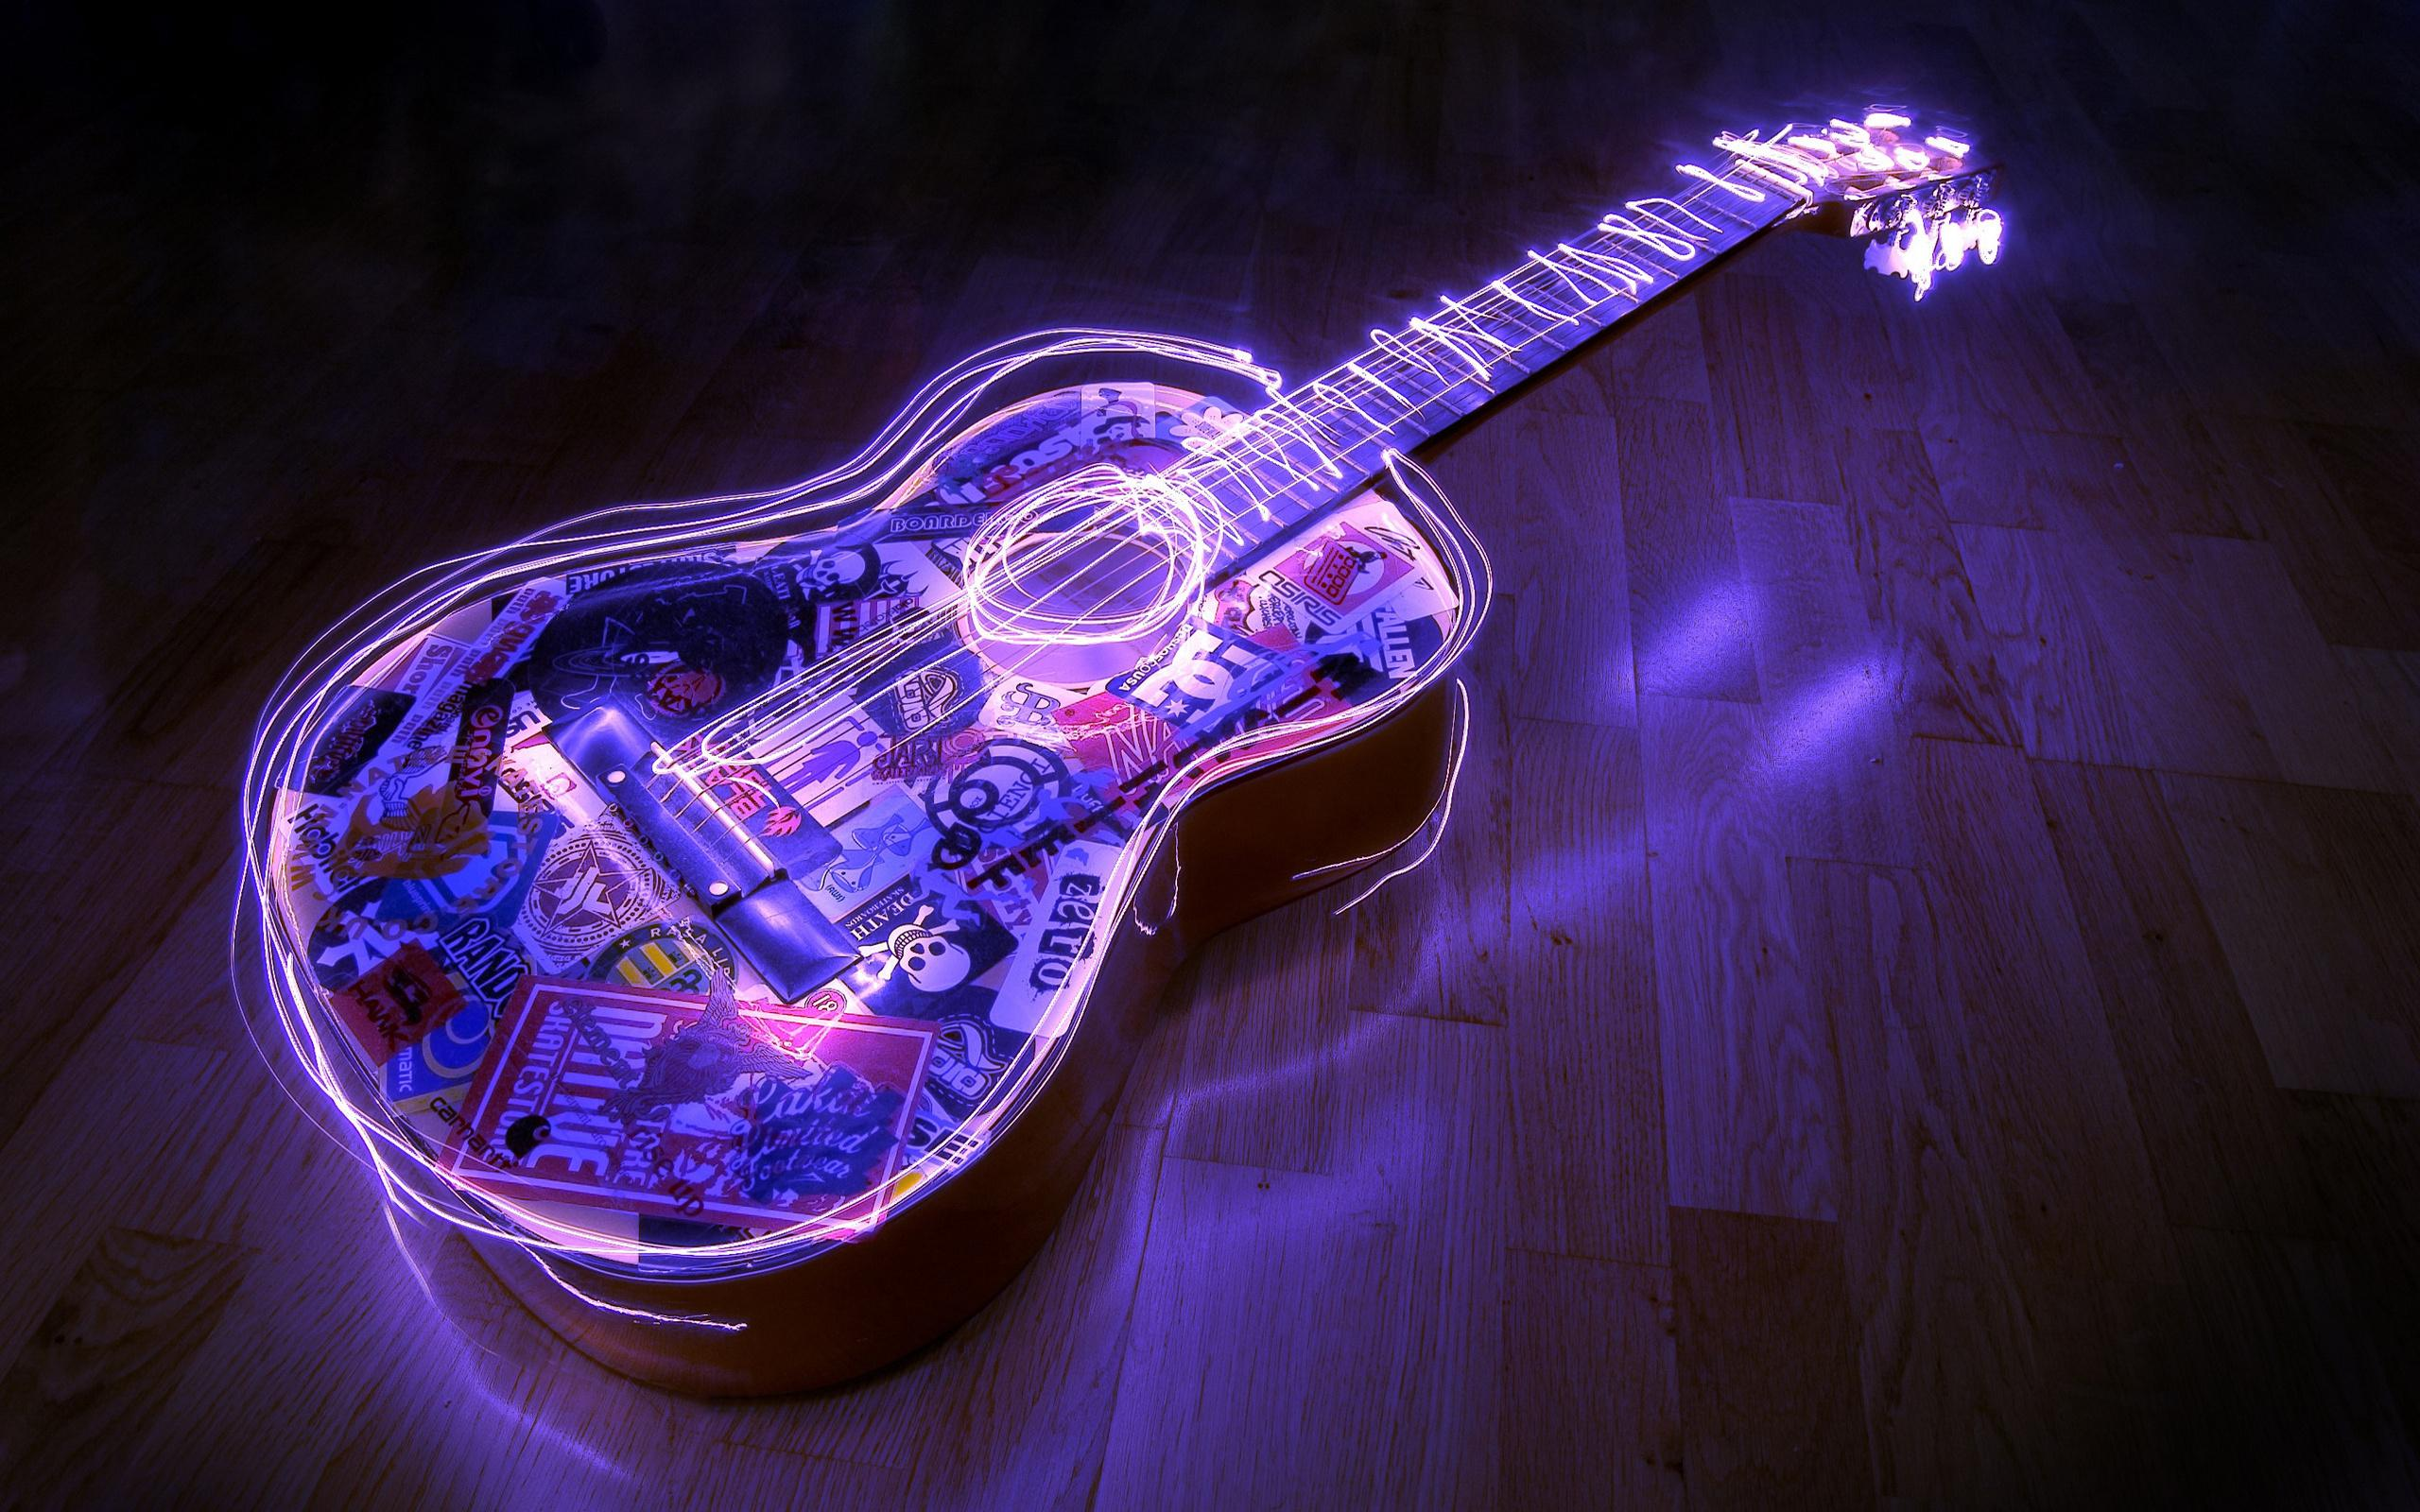 Acoustic-Guitar-HD-http-imashon-com-w-acoustic-guitar-hd-html-wallpaper-wp5403036